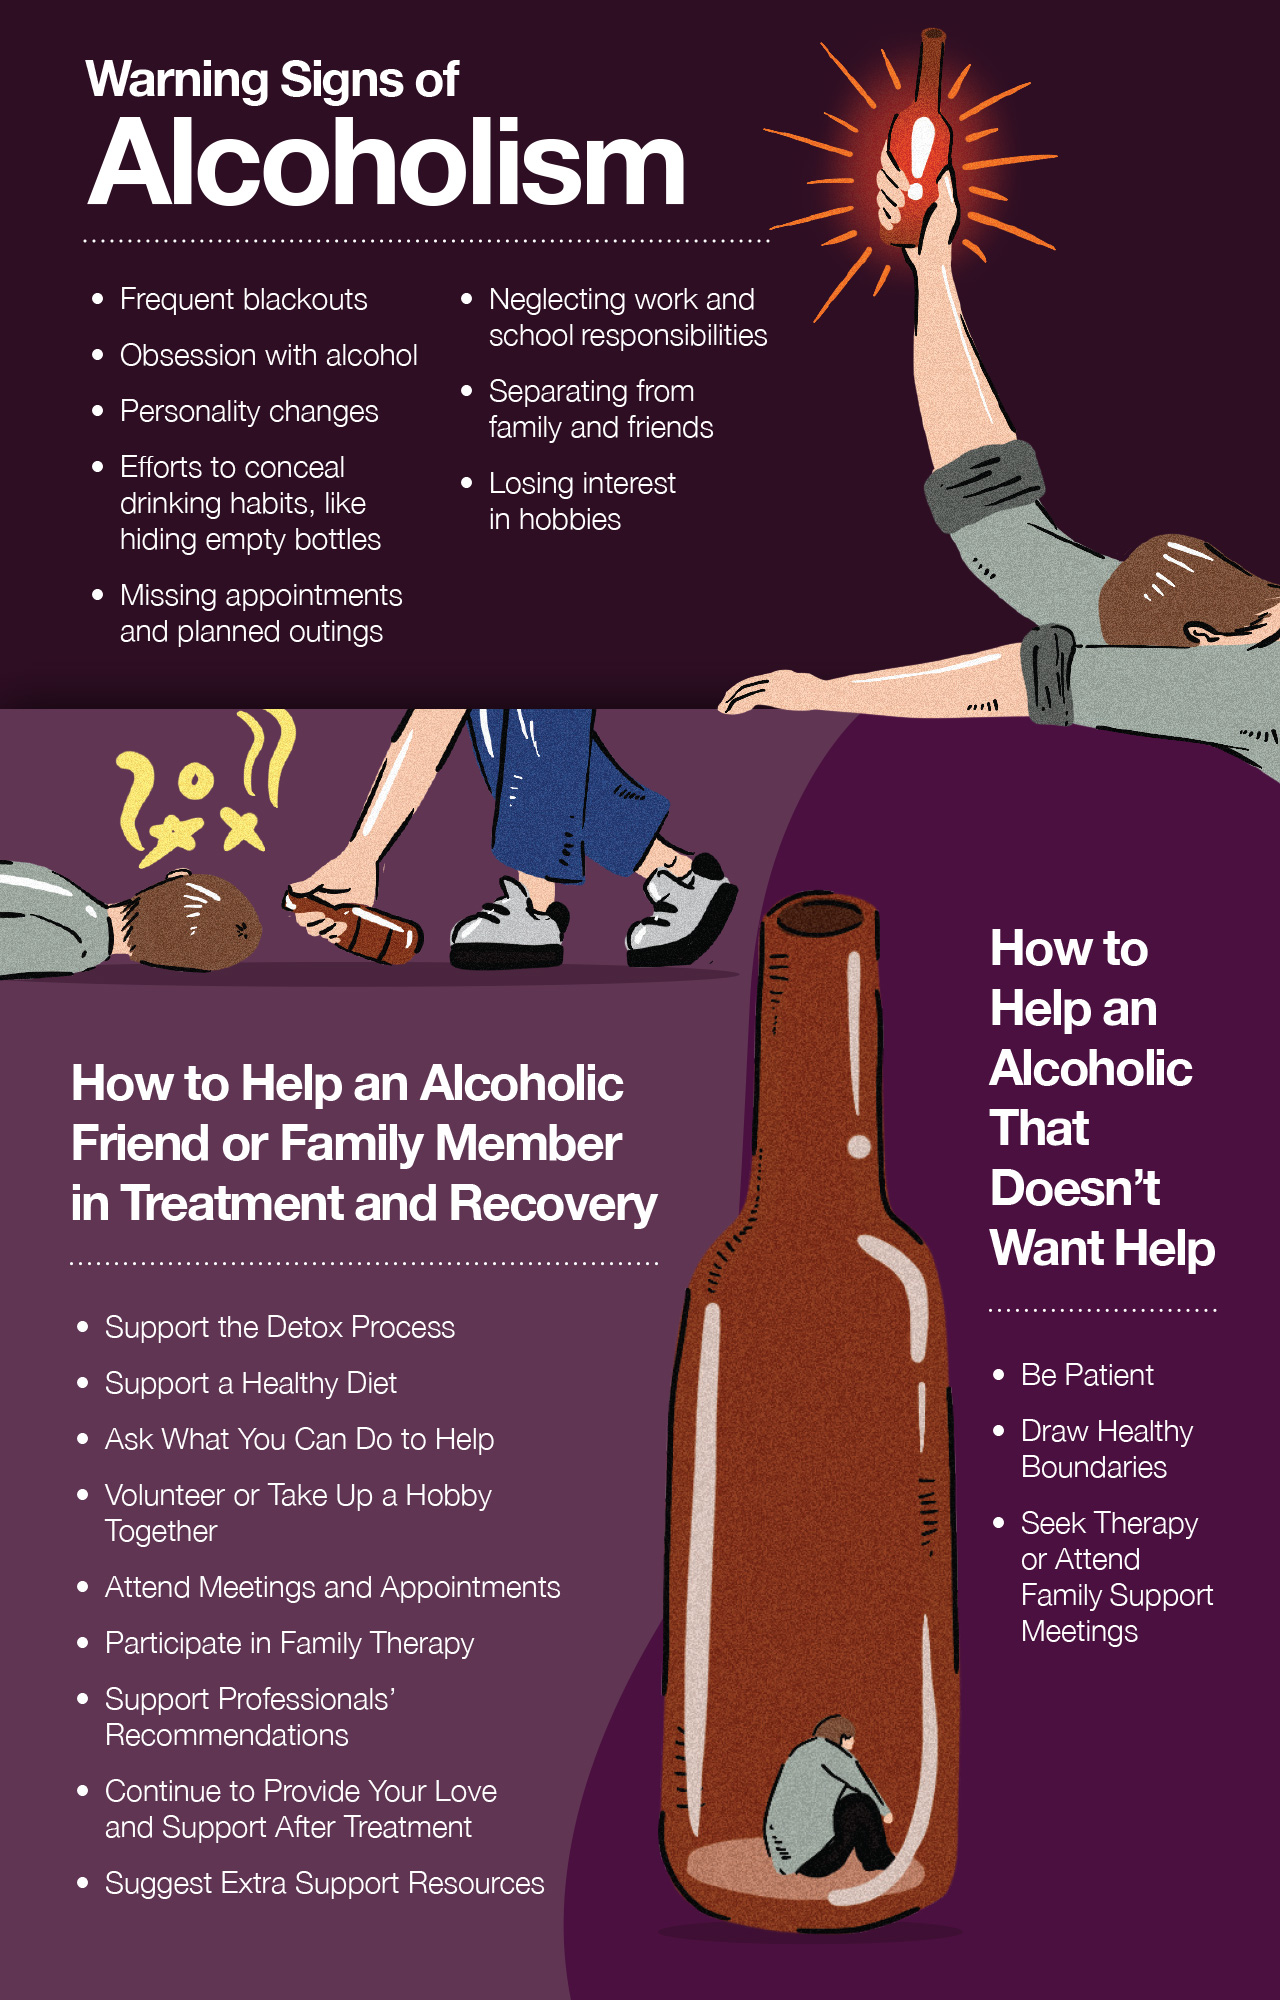 Warning Signs of Alcoholism